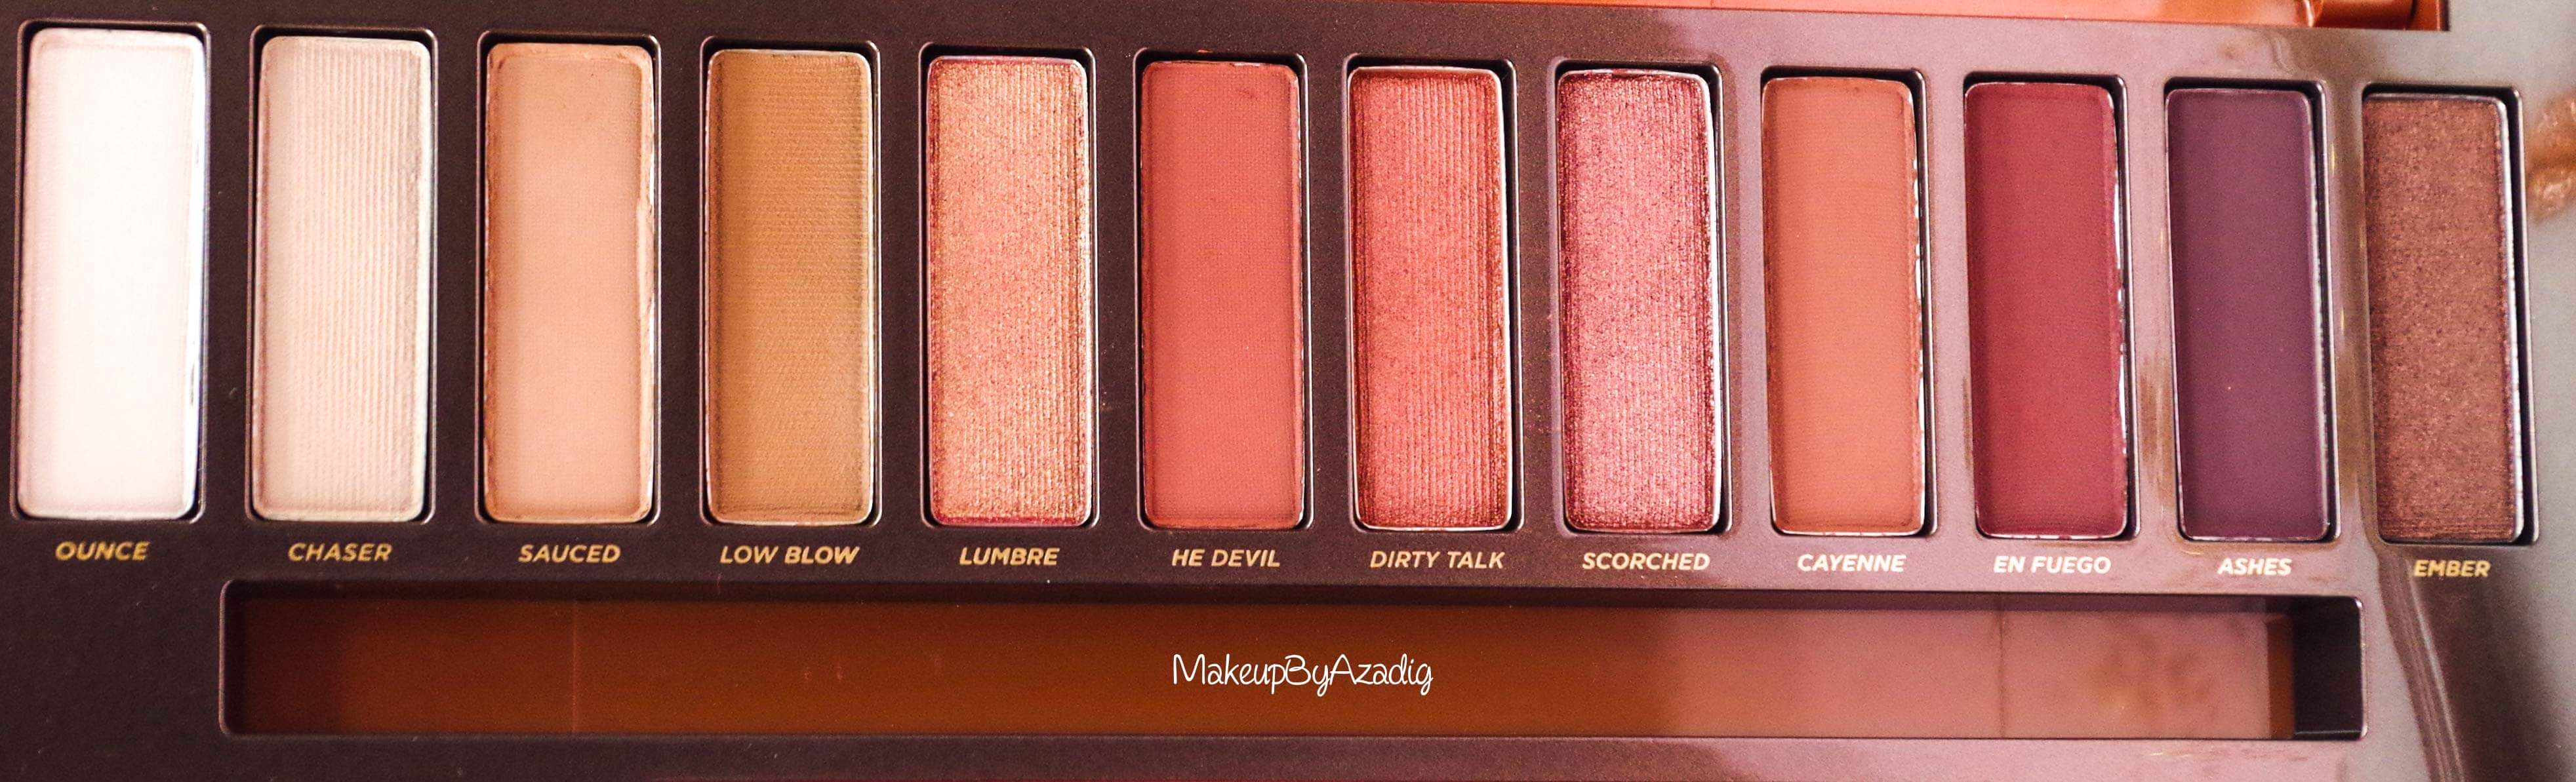 revue-review-nouvelle-palette-naked-heat-urban-decay-sephora-avis-prix-france-makeupbyazadig-swatch-swatches